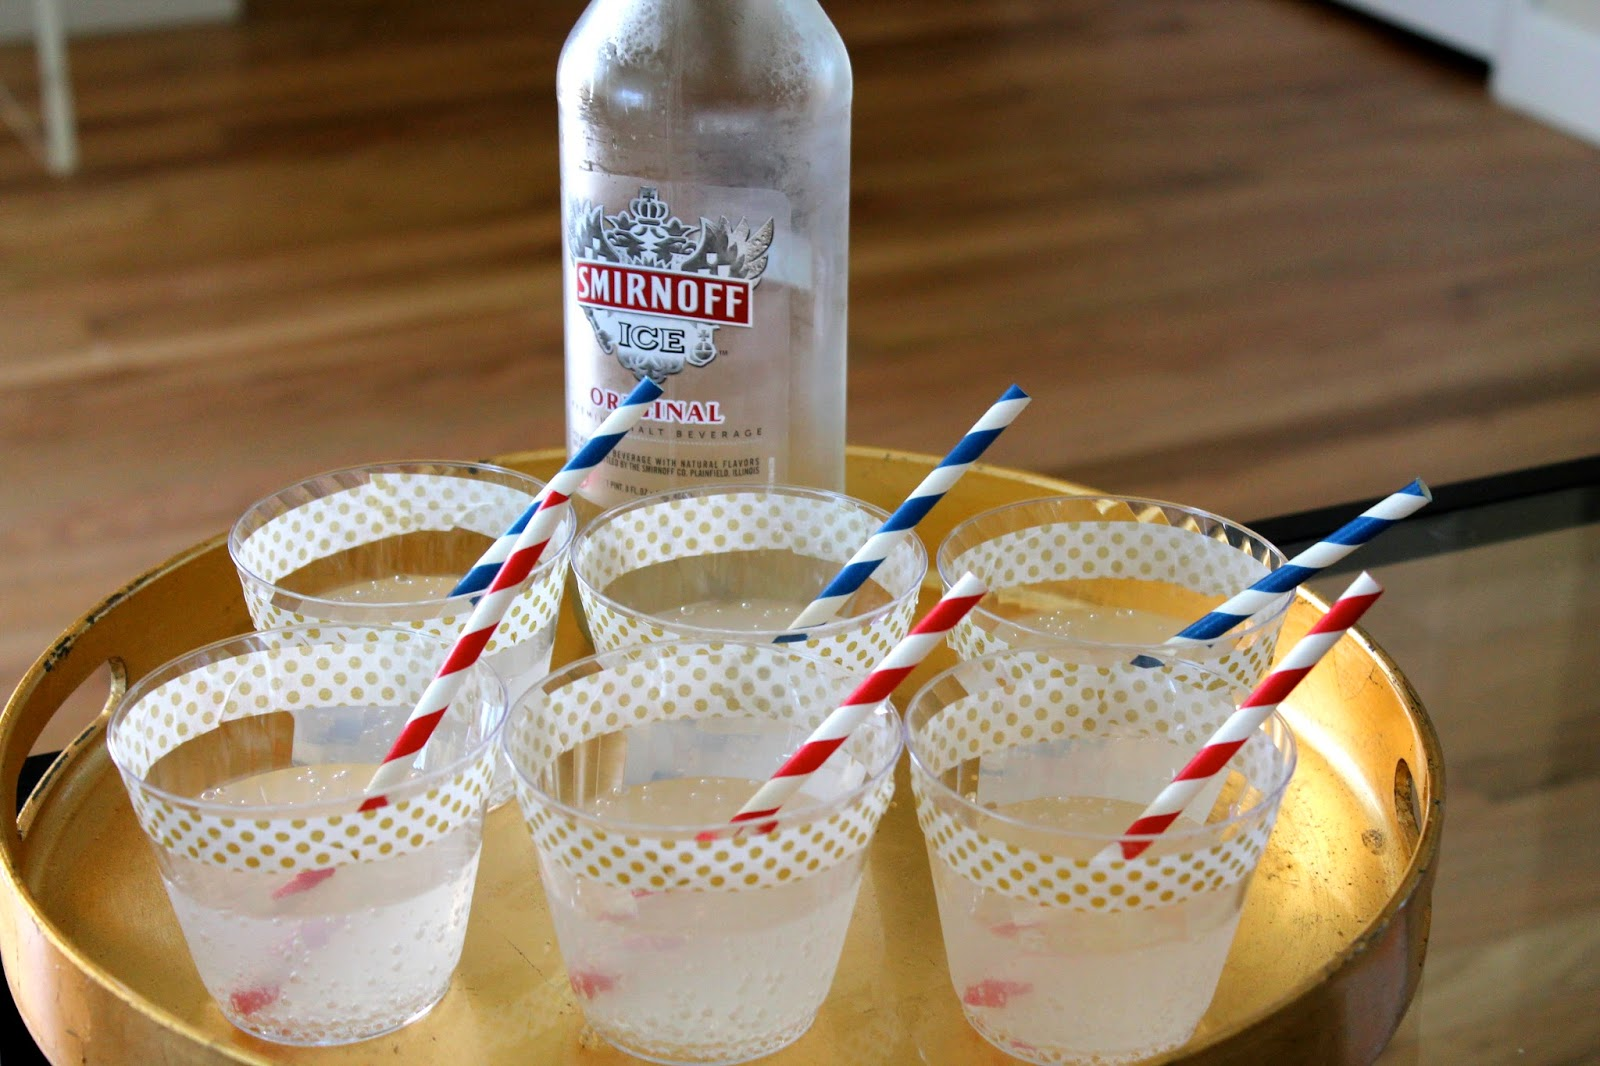 smirnoff ice, fourth of july, diy cups, party decor